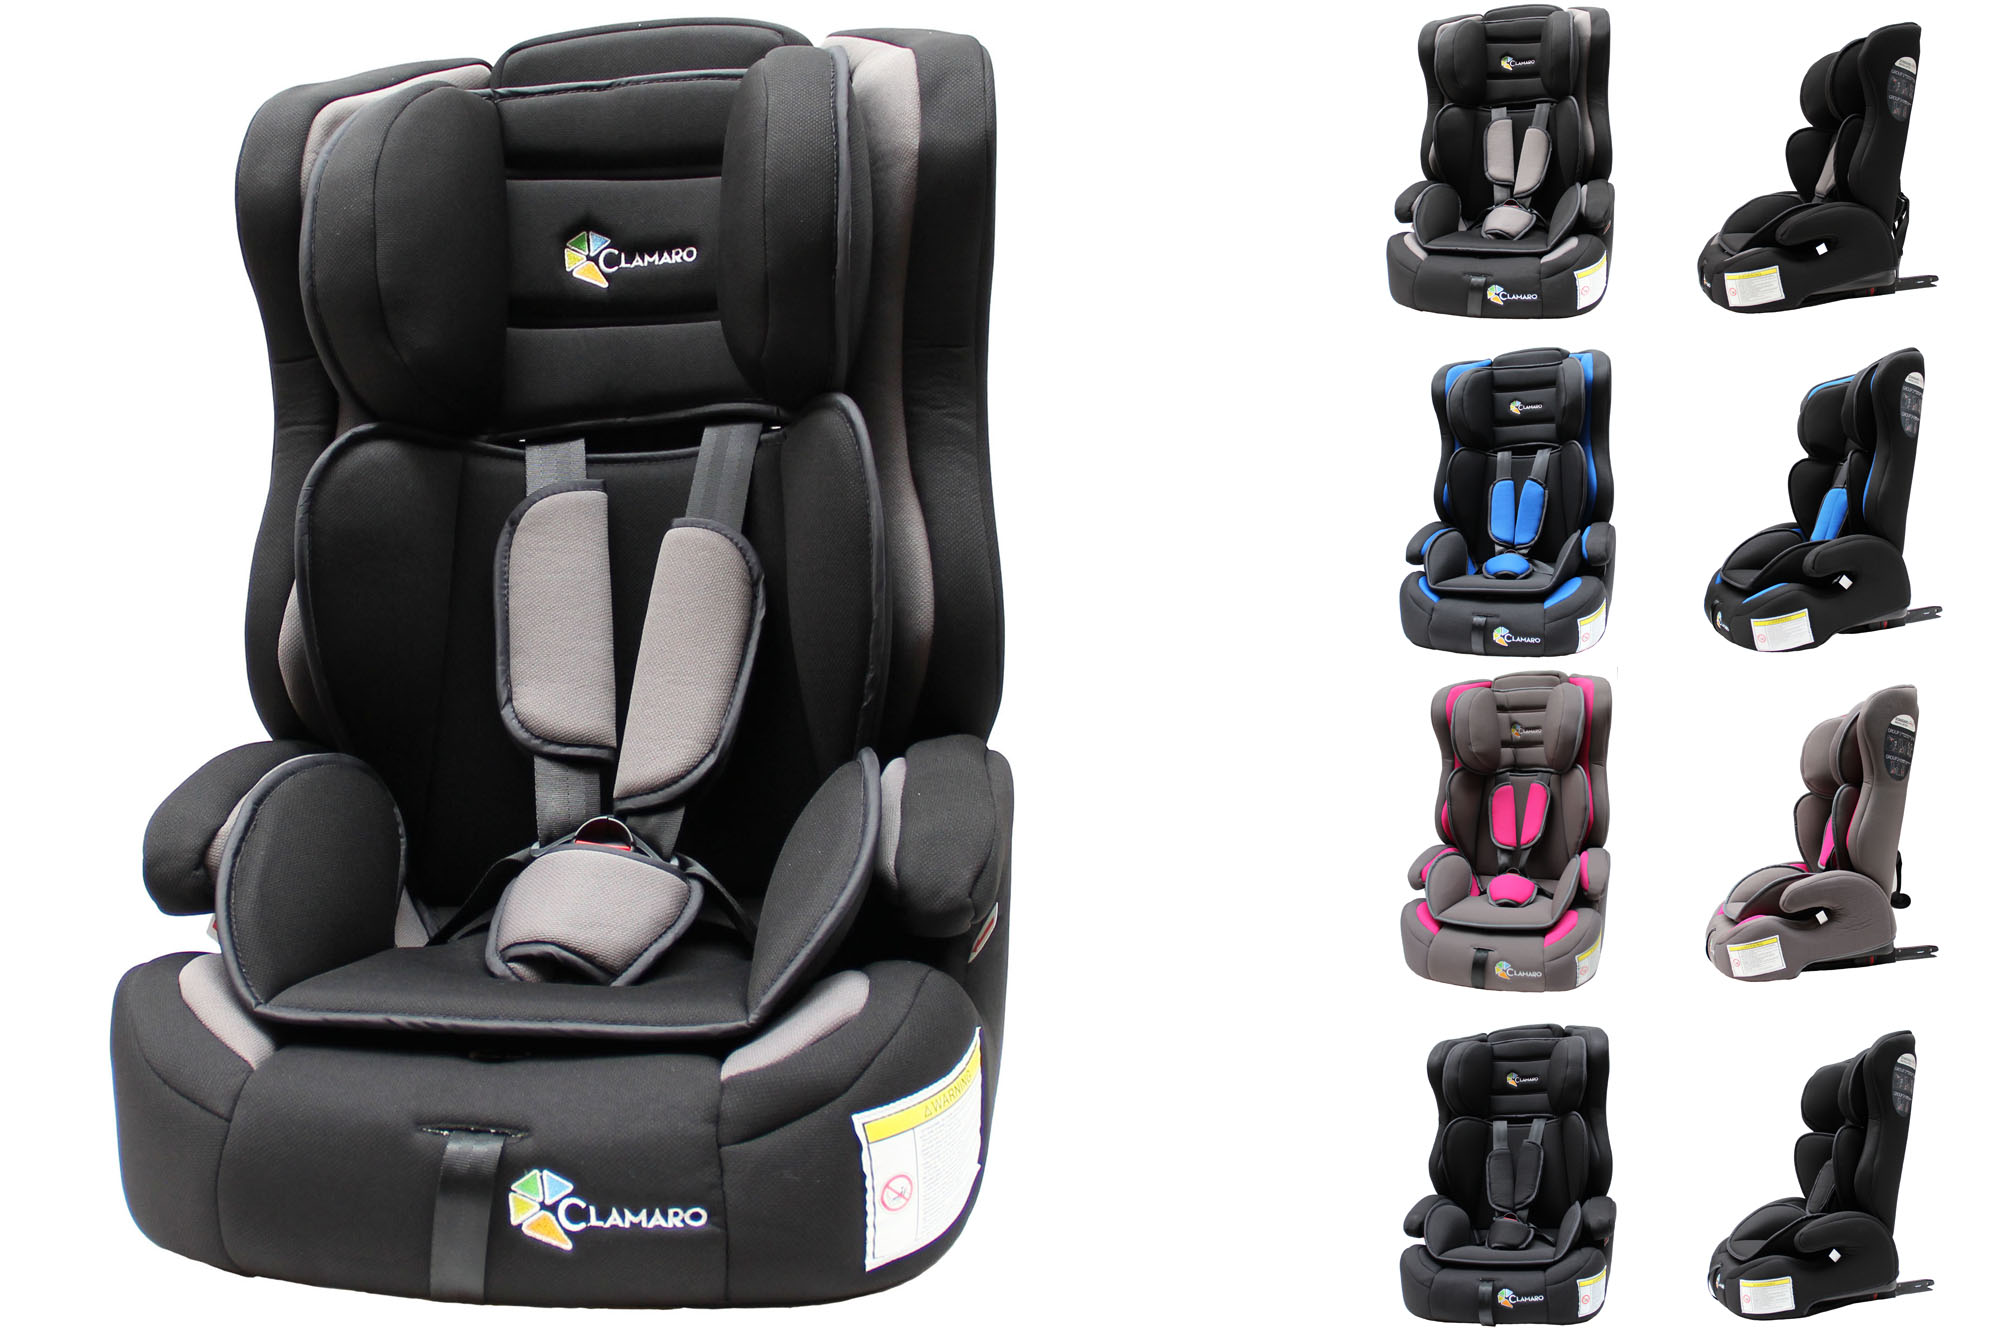 kindersitz bis 36 kg isofix babygo kindersitz wega 15. Black Bedroom Furniture Sets. Home Design Ideas